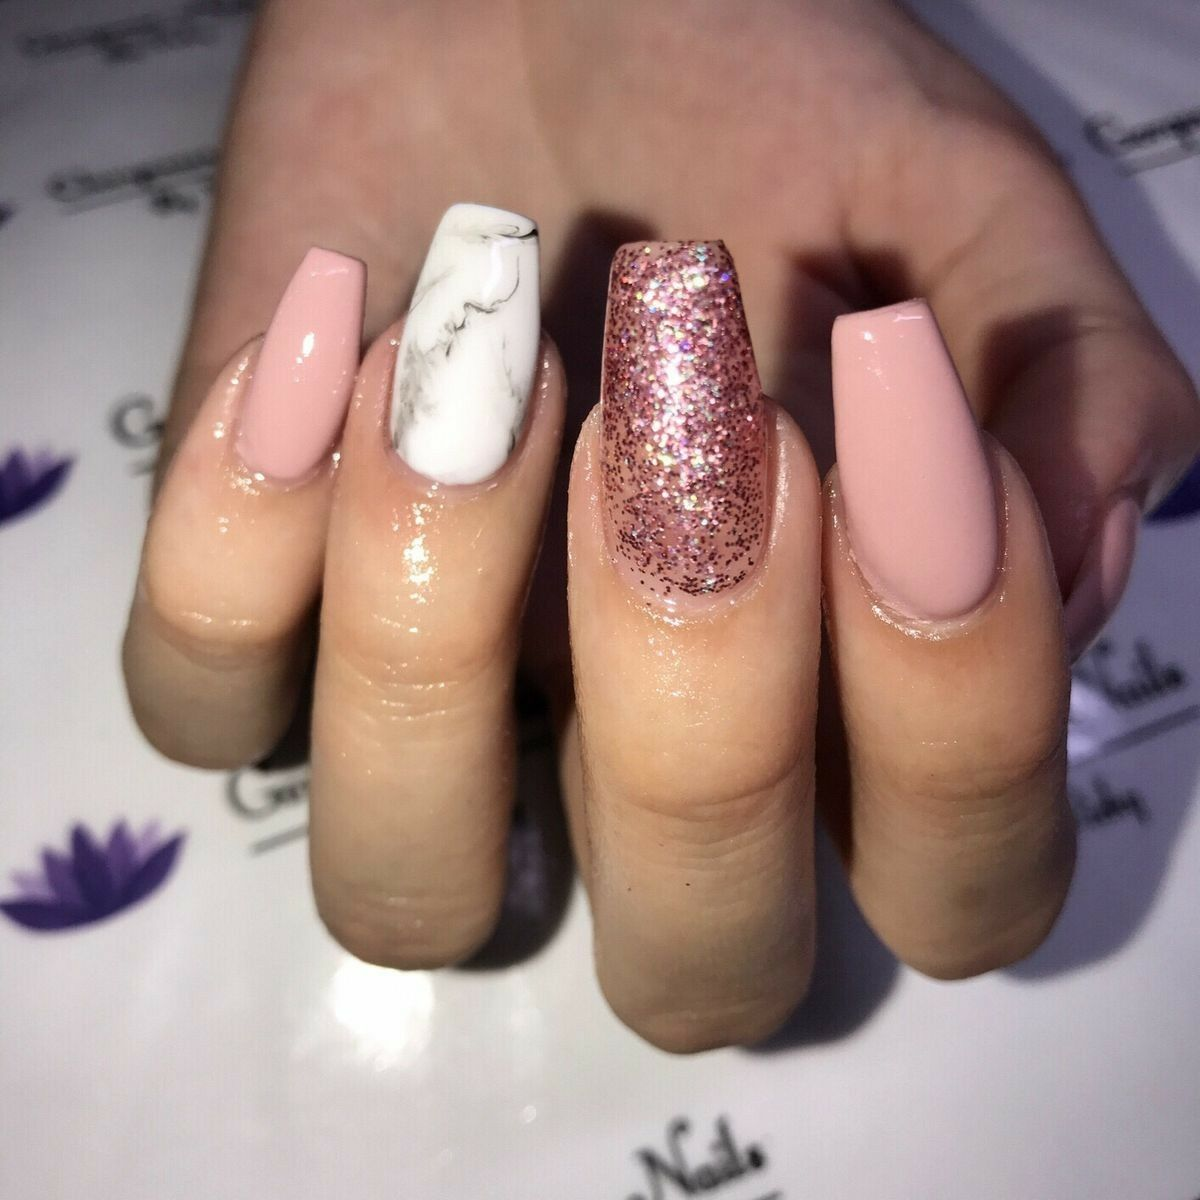 Tapered Square Nails Pink Nails Pink Glitter Nails Marble Nails Acrylic Nails Pink Glitter Nails Tapered Square Nails Pink Nails